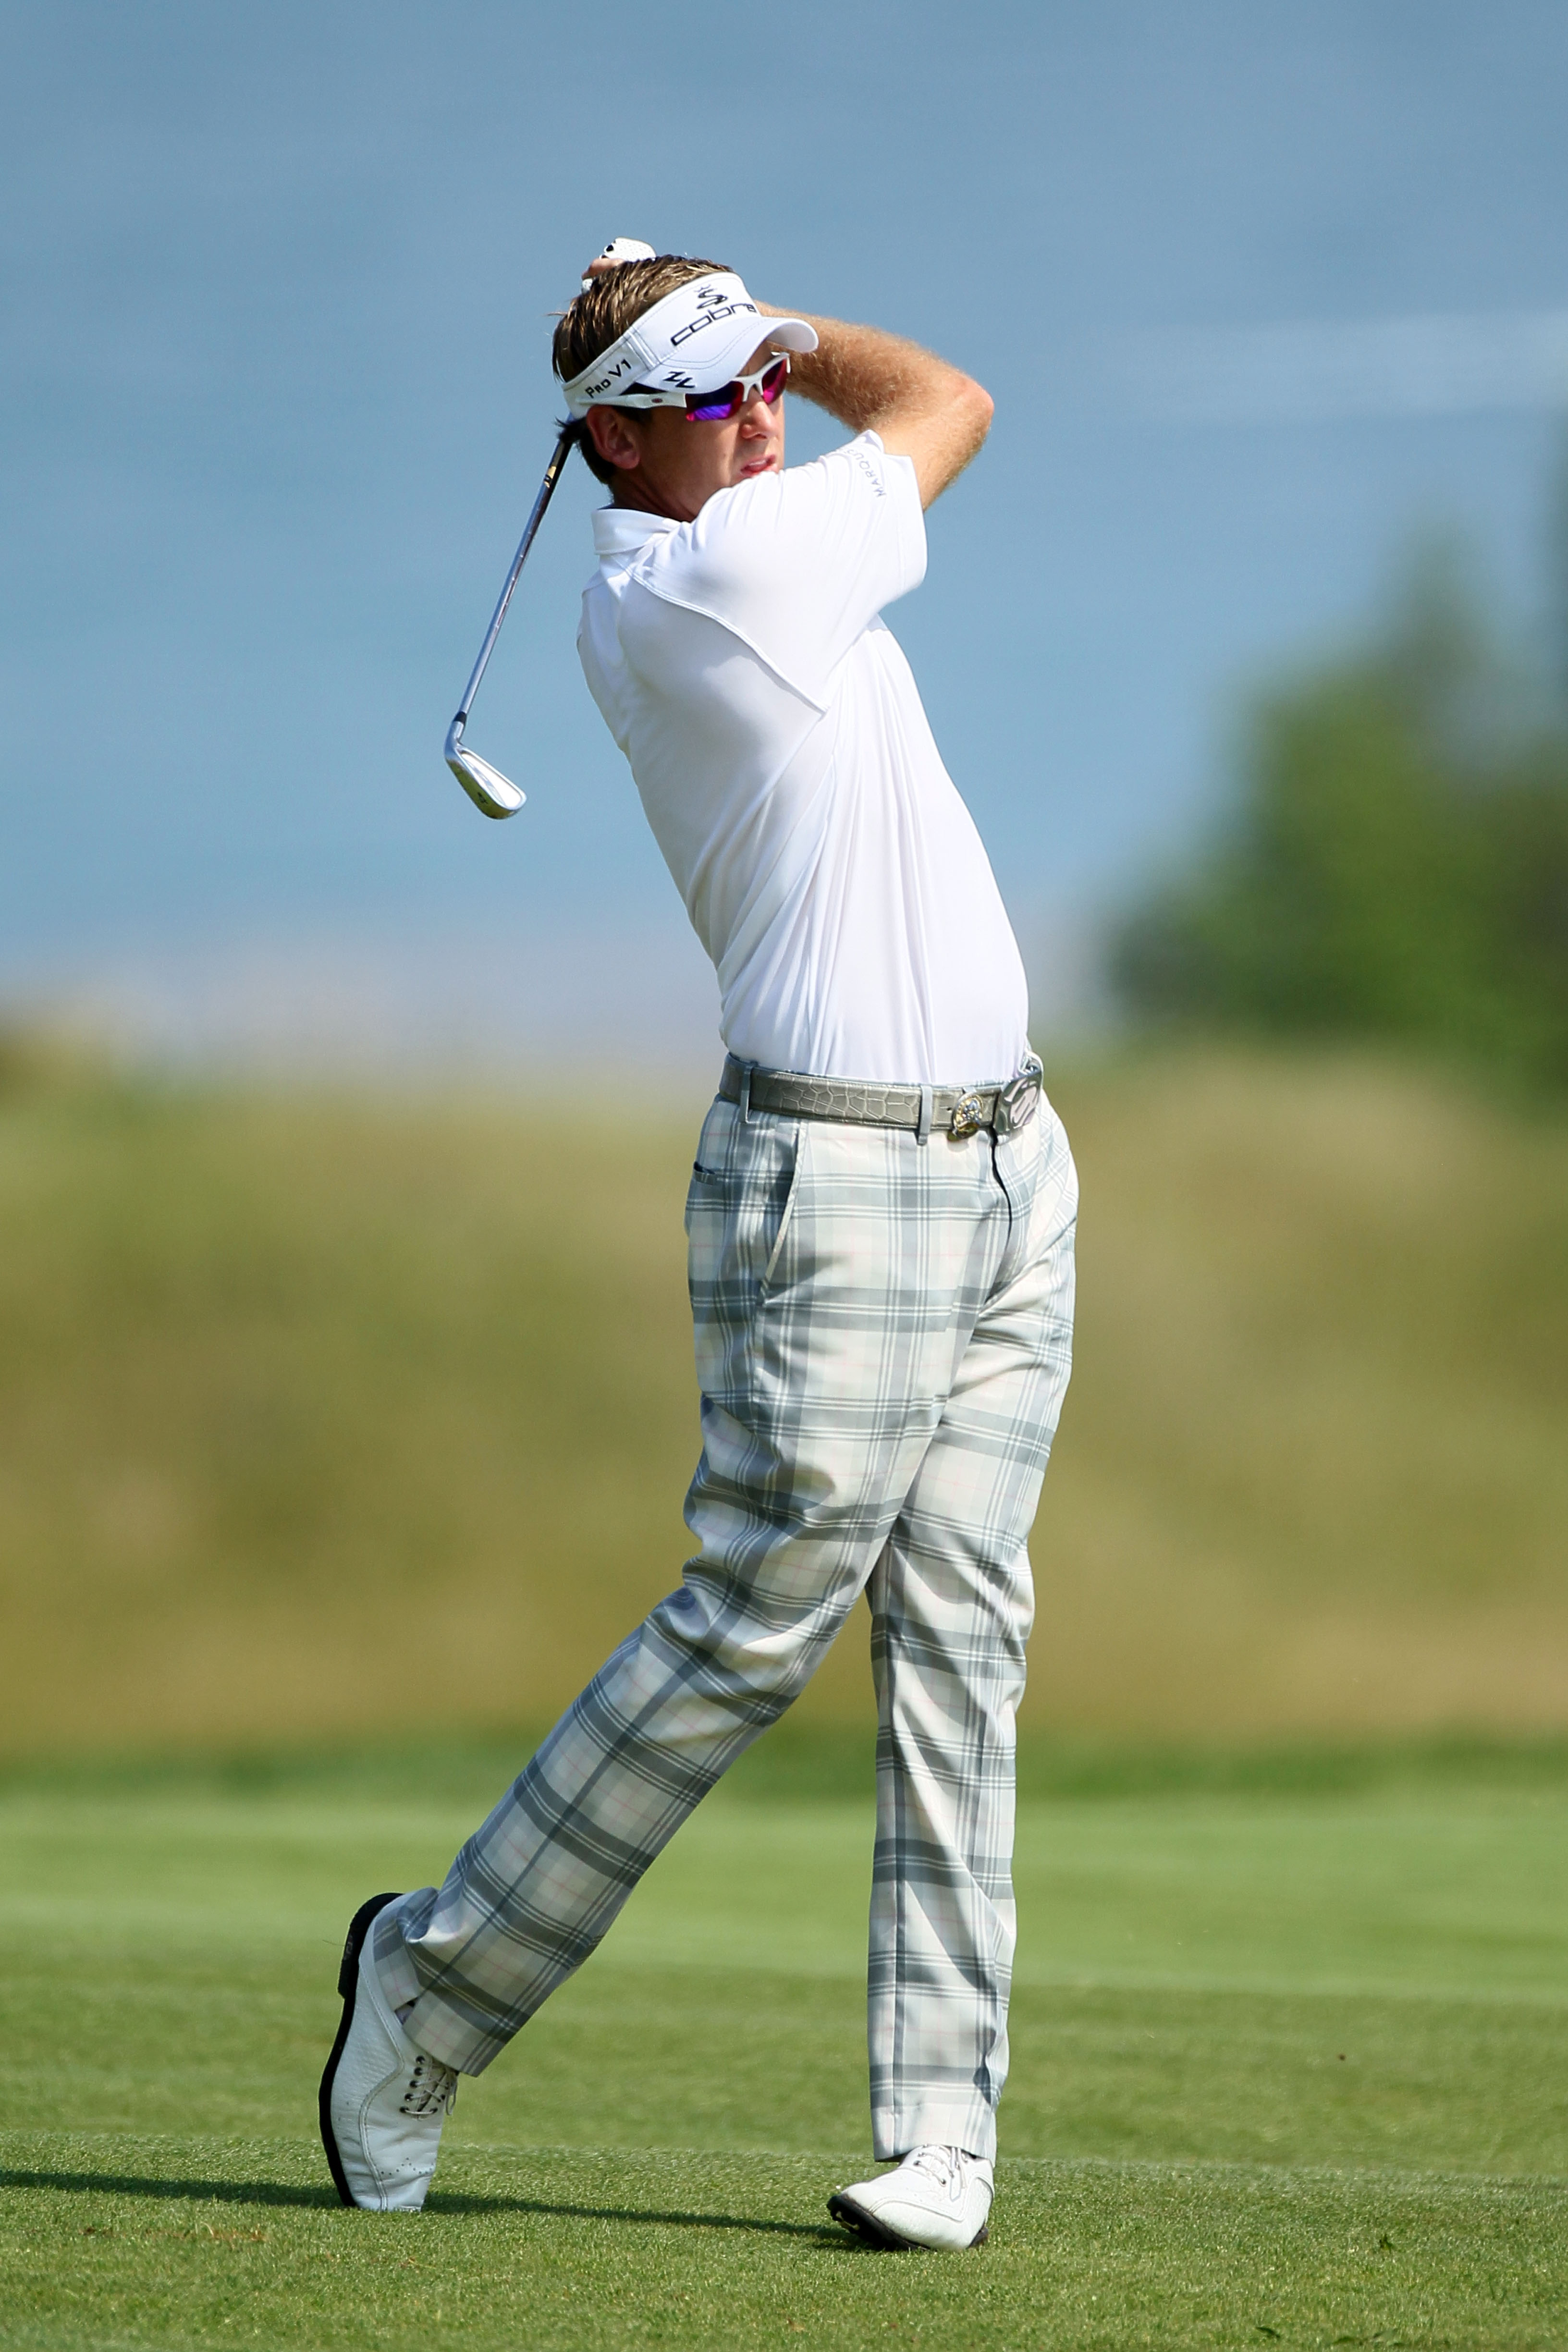 KOHLER, WI - AUGUST 11:  Ian Poulter of England hits a shot during a practice round prior to the start of the 92nd PGA Championship on the Straits Course at Whistling Straits on August 11, 2010 in Kohler, Wisconsin.  (Photo by Andy Lyons/Getty Images)